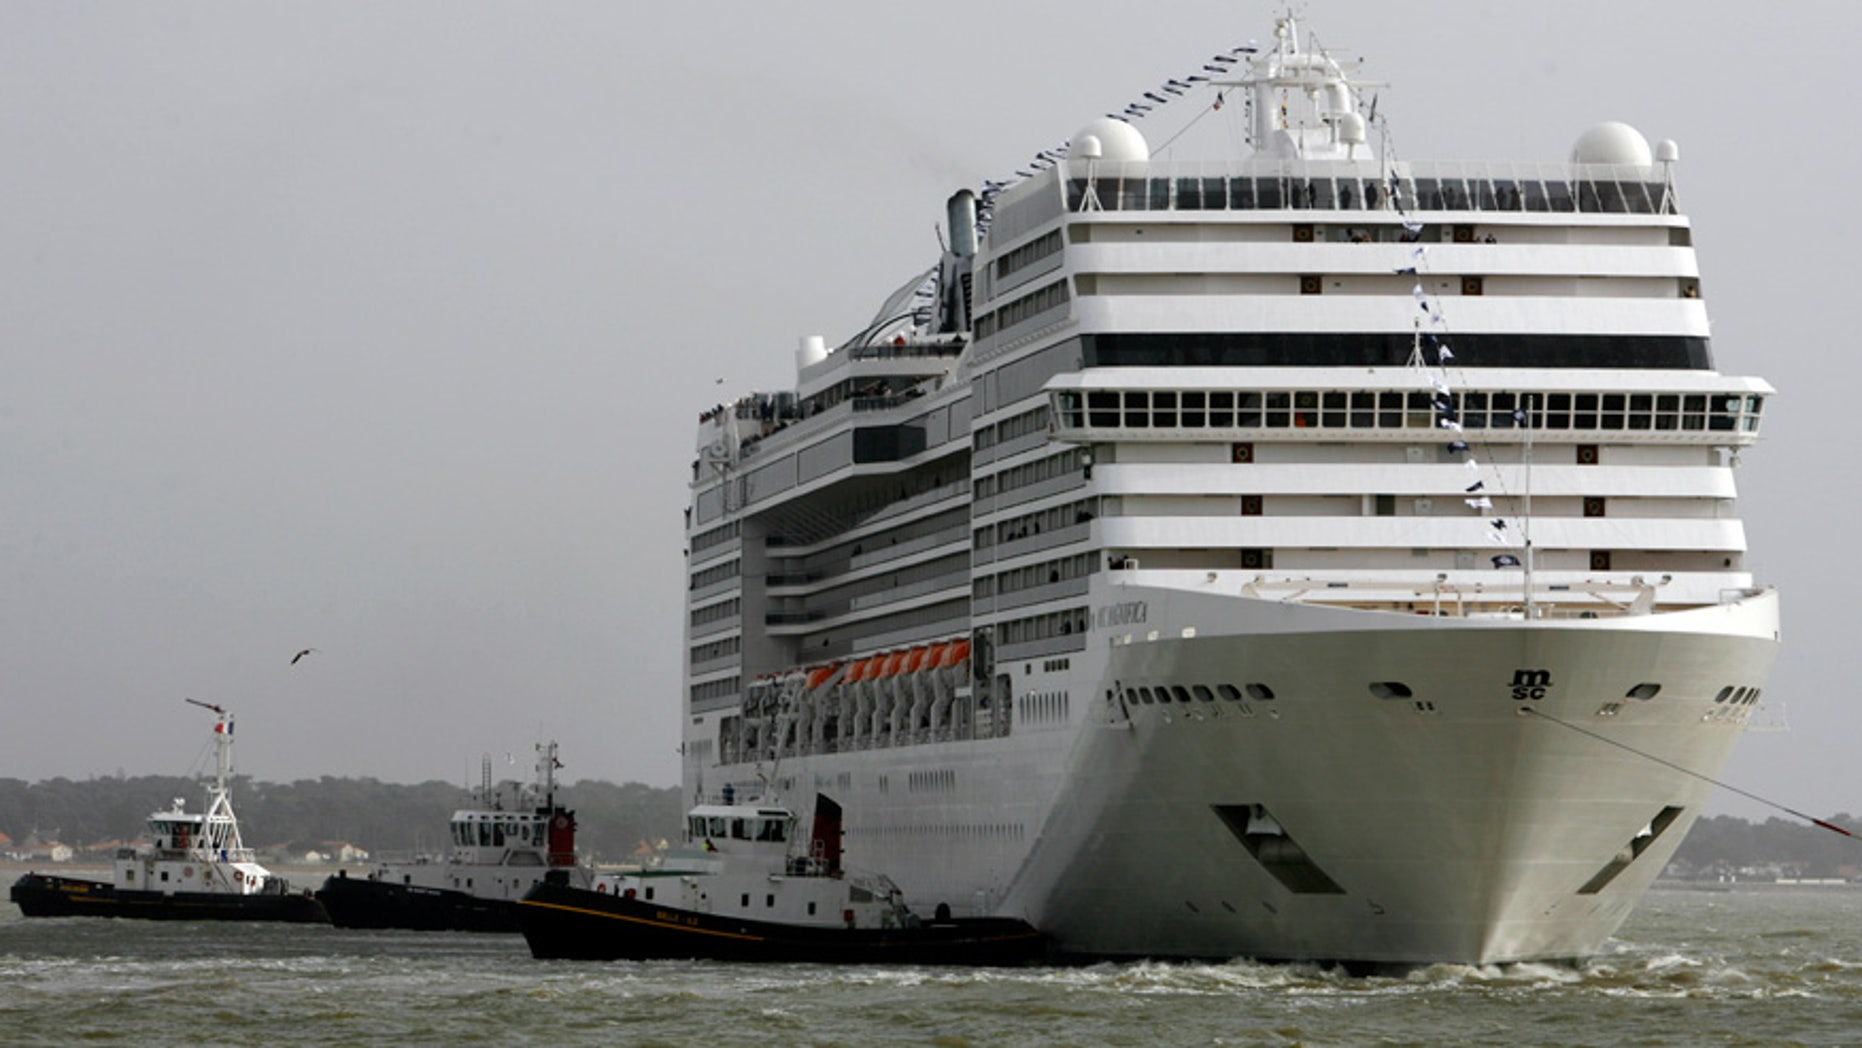 The MSC Magnifica cruise liner is seen off the coast of France in 2010.